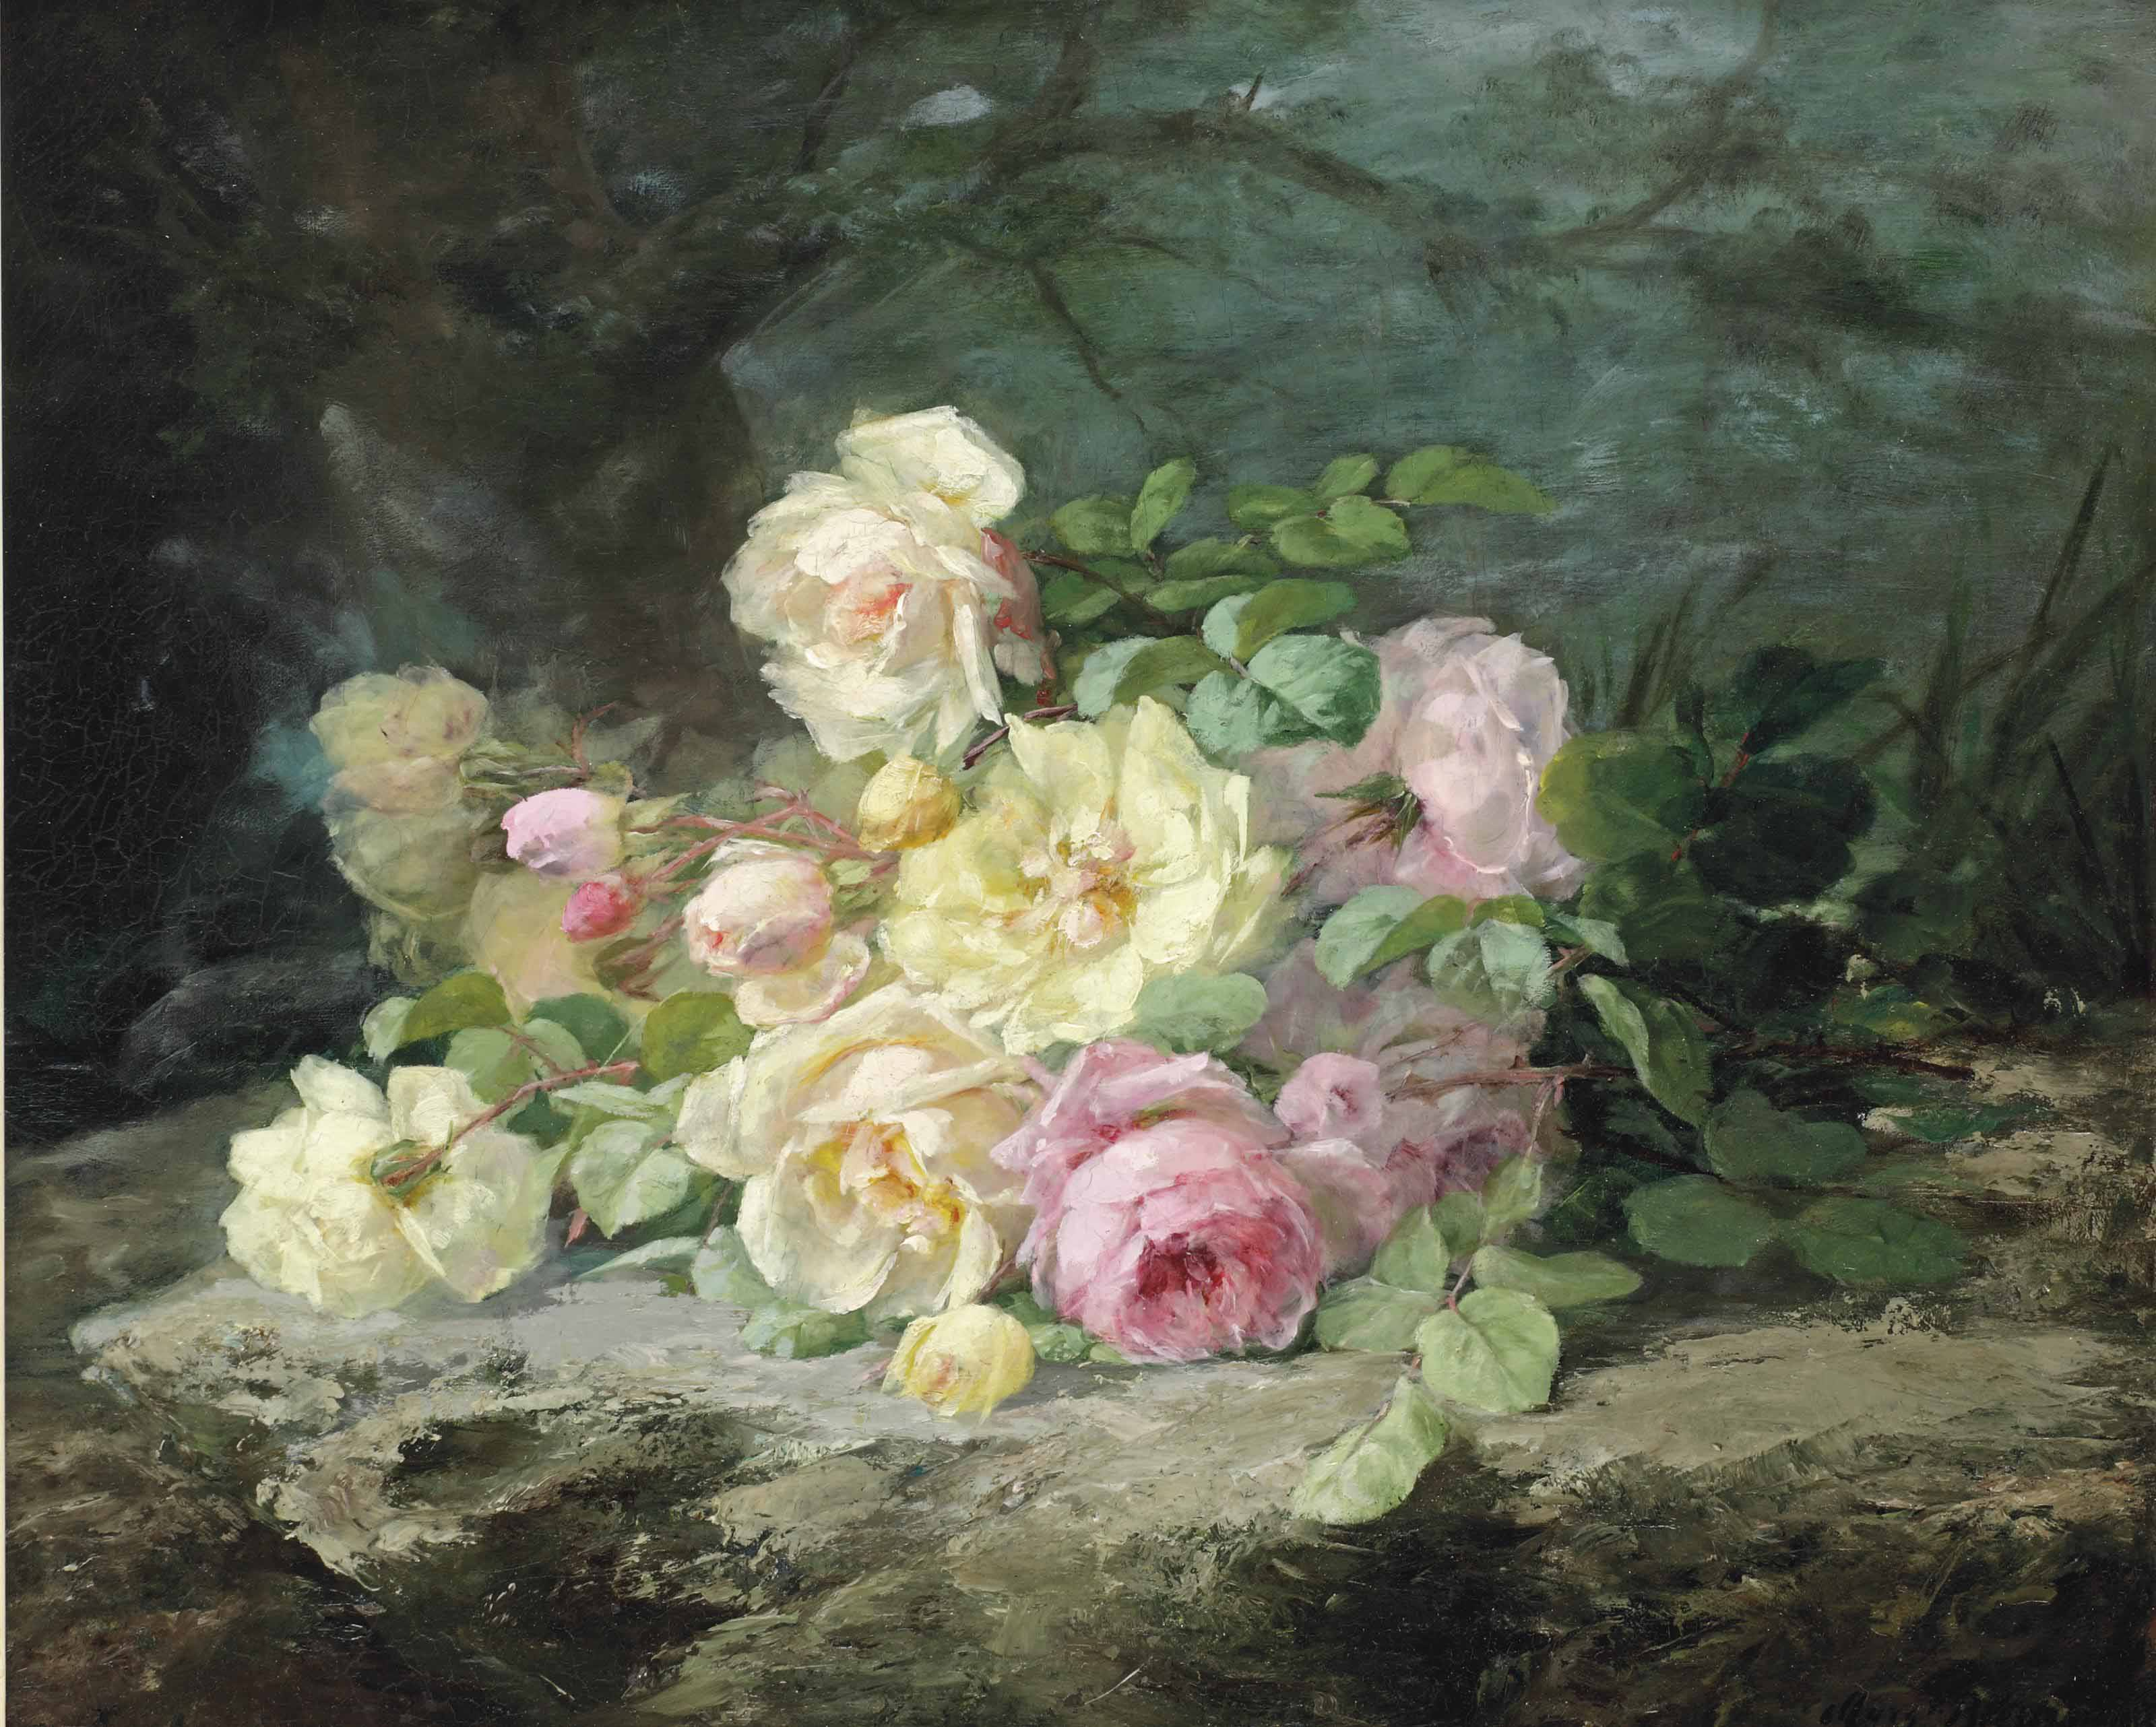 White and pink roses on a forest floor